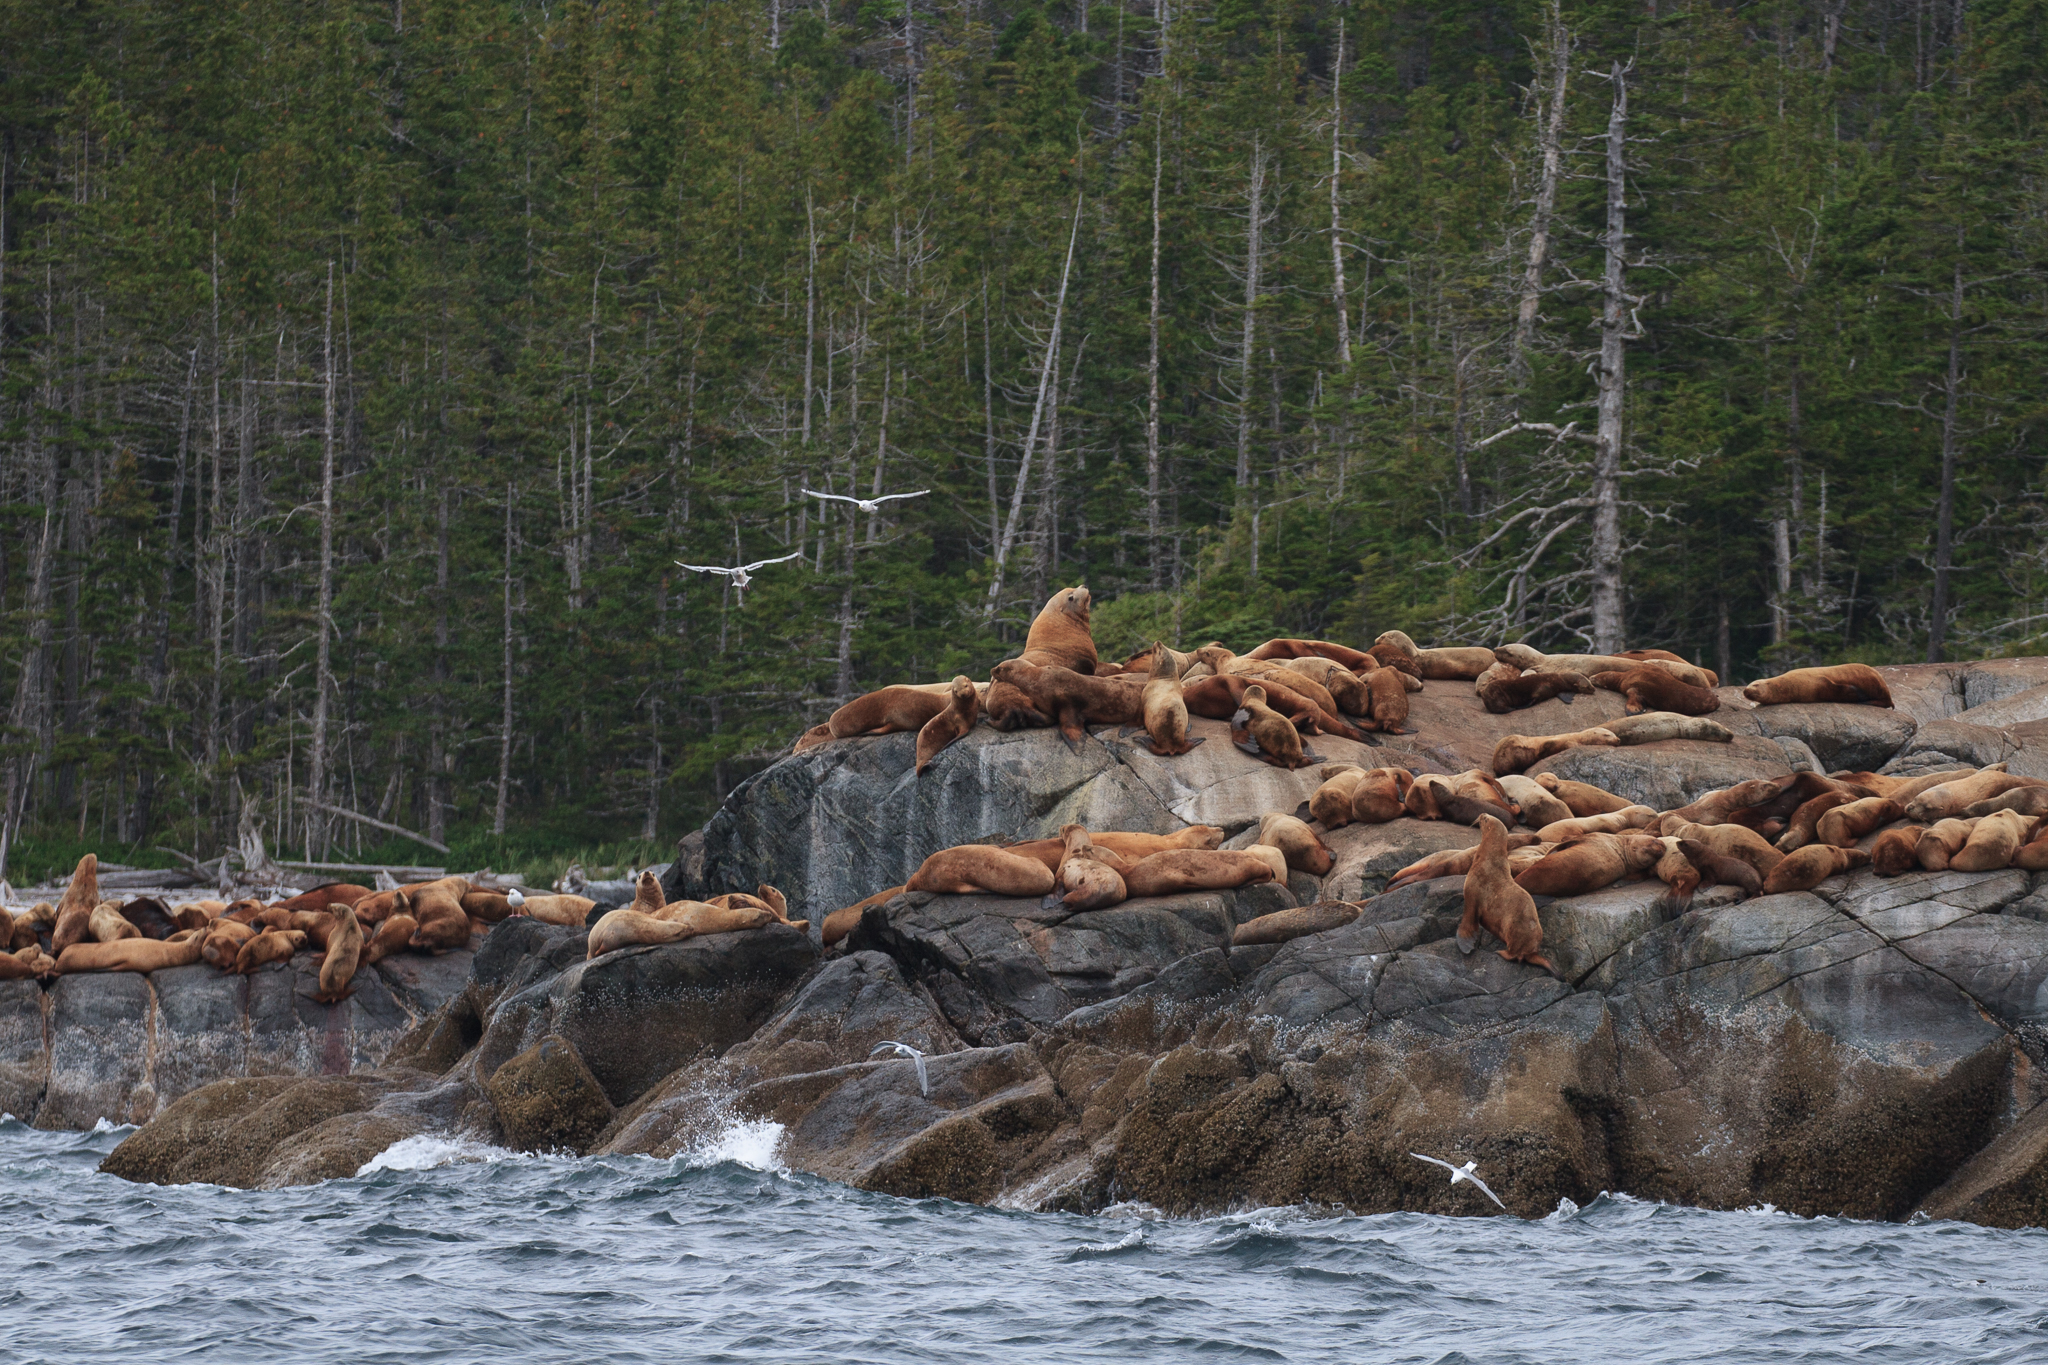 Sea lions are a preferred prey of a distinct race of orcas that feeds almost exclusively on marine mammals off the coast of the Great Bear Rainforest.